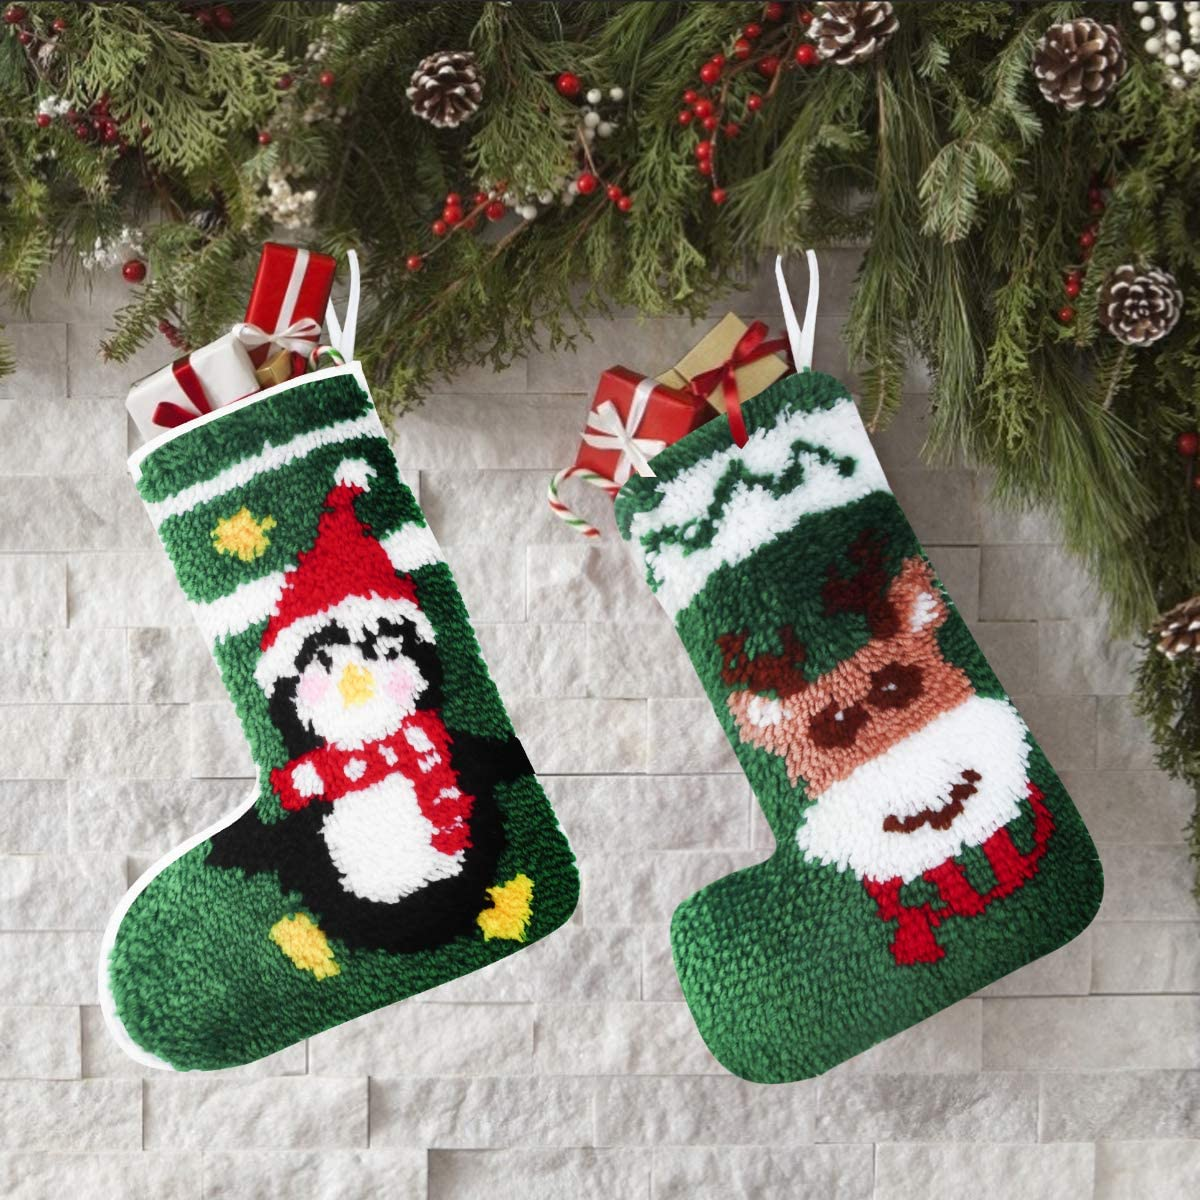 Latch Hook Kits DIY Christmas Stockings with Pattern Printed Shaggy Christmas Decoration Ornament Bag Black and White Penguin 30x45cm//11.8x17.7Inch